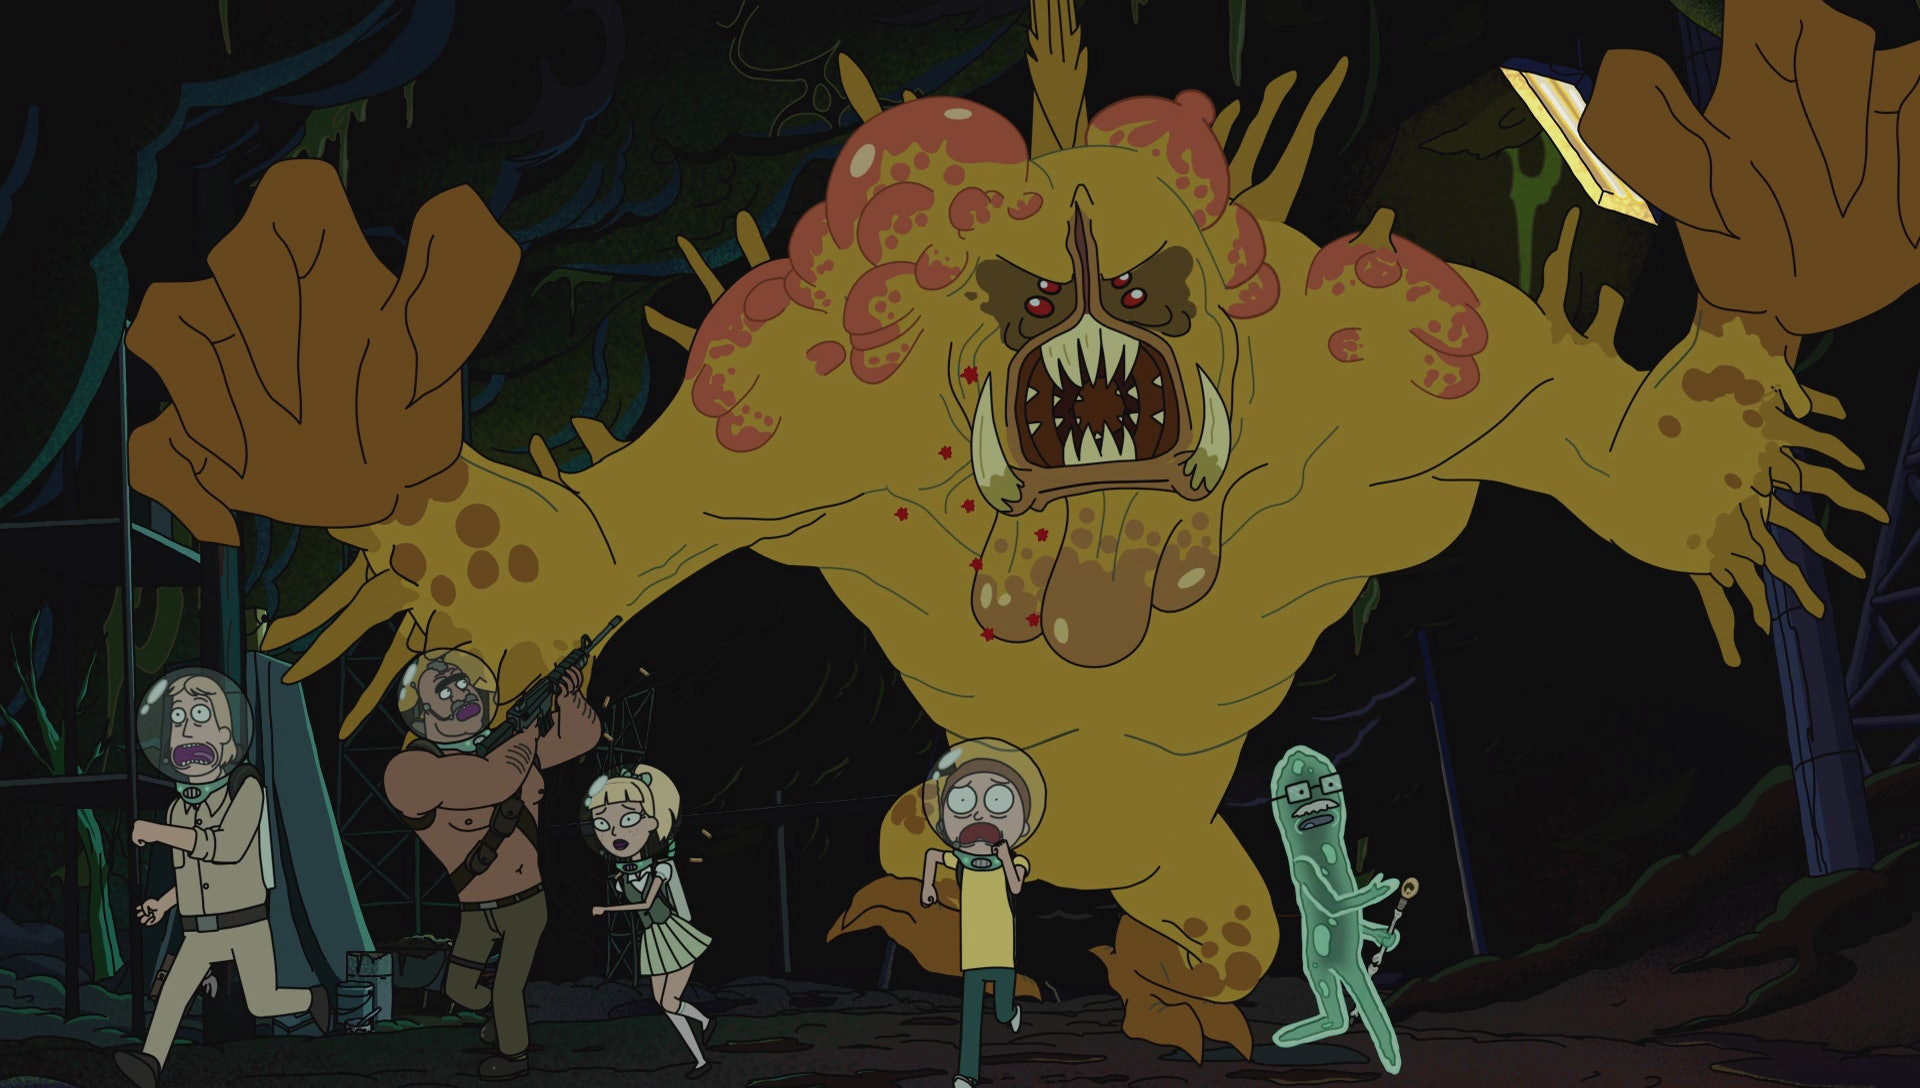 Generic Scientist, Angry Gun-Toting Soldier, Cute Damsel, Morty, and Dr. Xenon Bloom get chased by a forgettable booger monster.